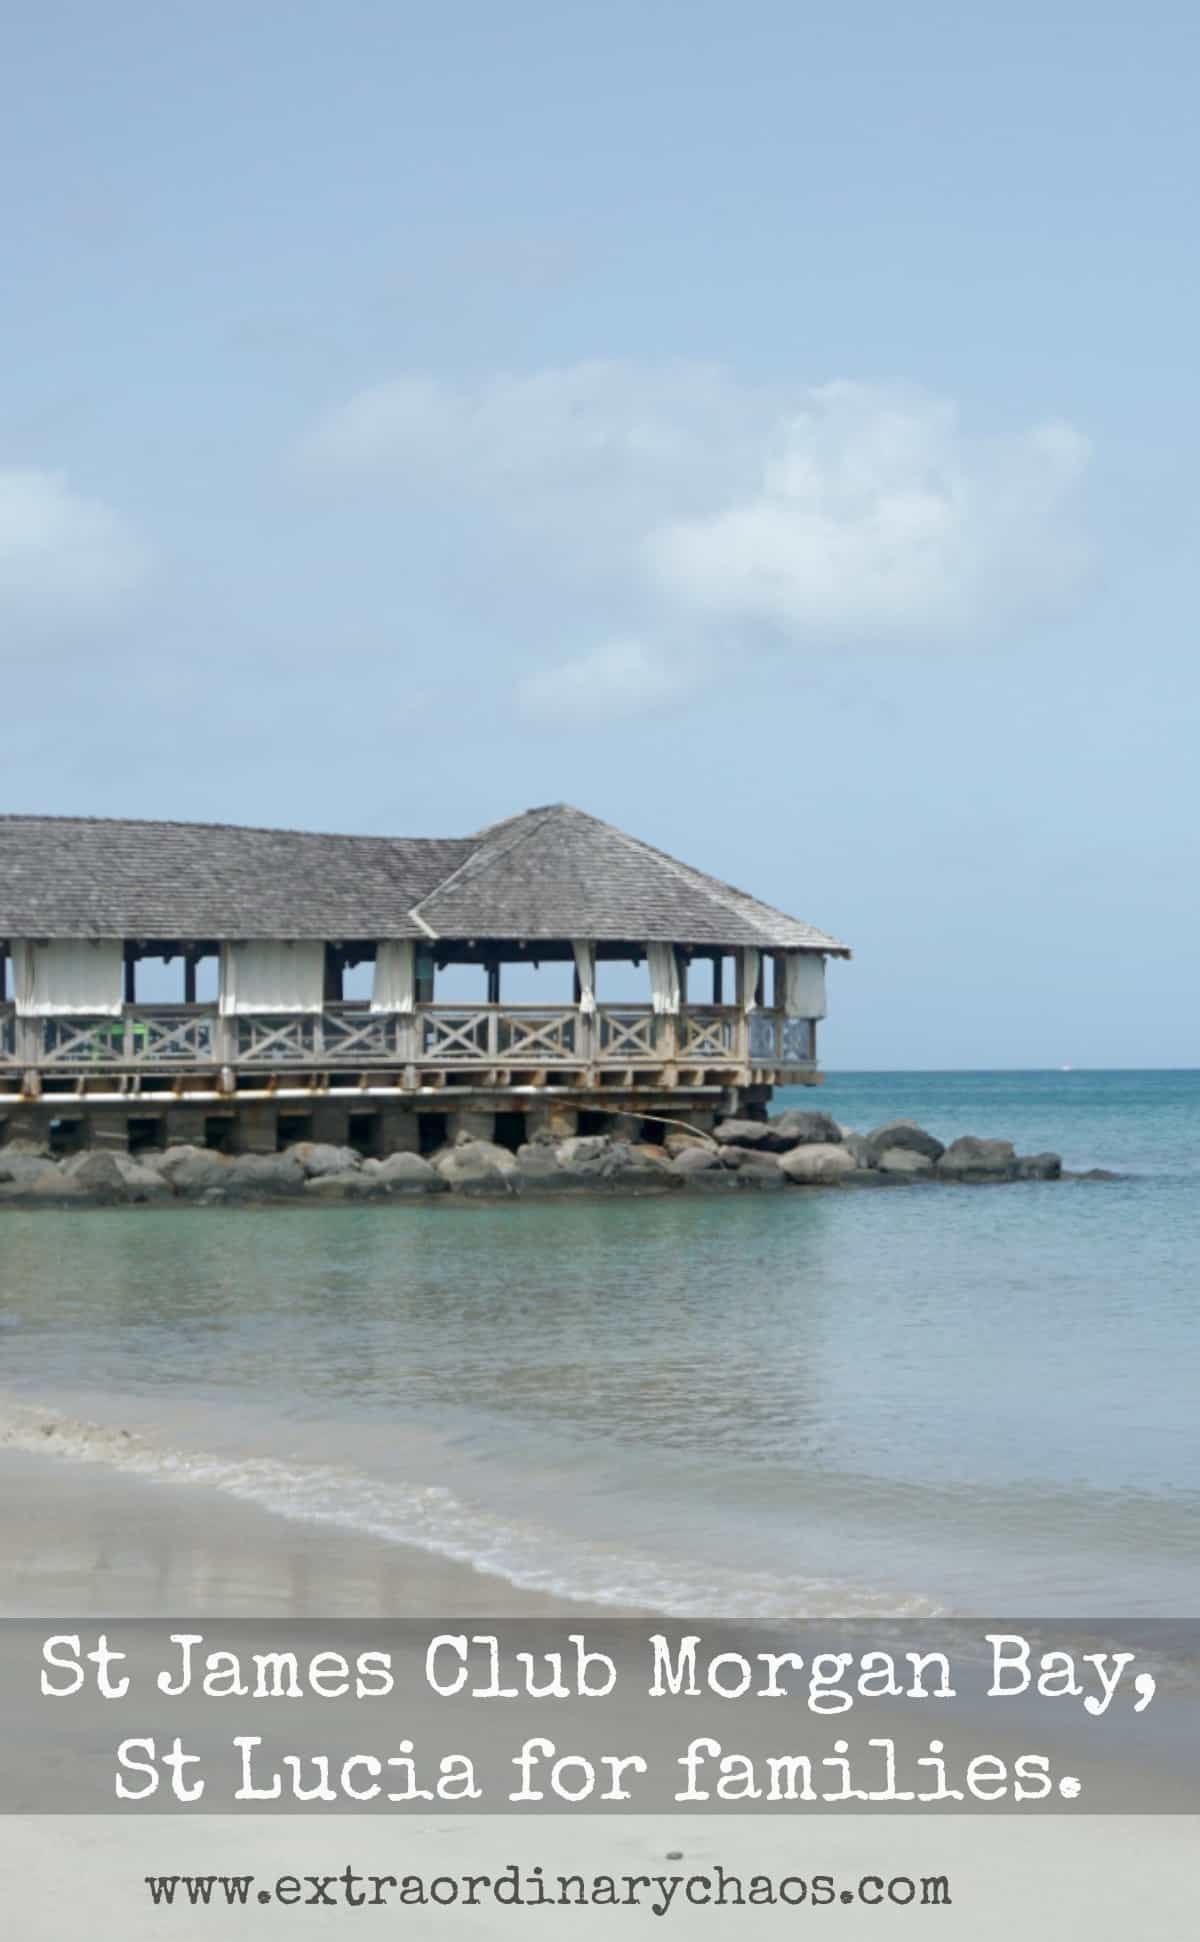 What is there for families with kids and teens to do a St James Club, Morgan Bay St Lucia including the beach party, water sports and an Island tour